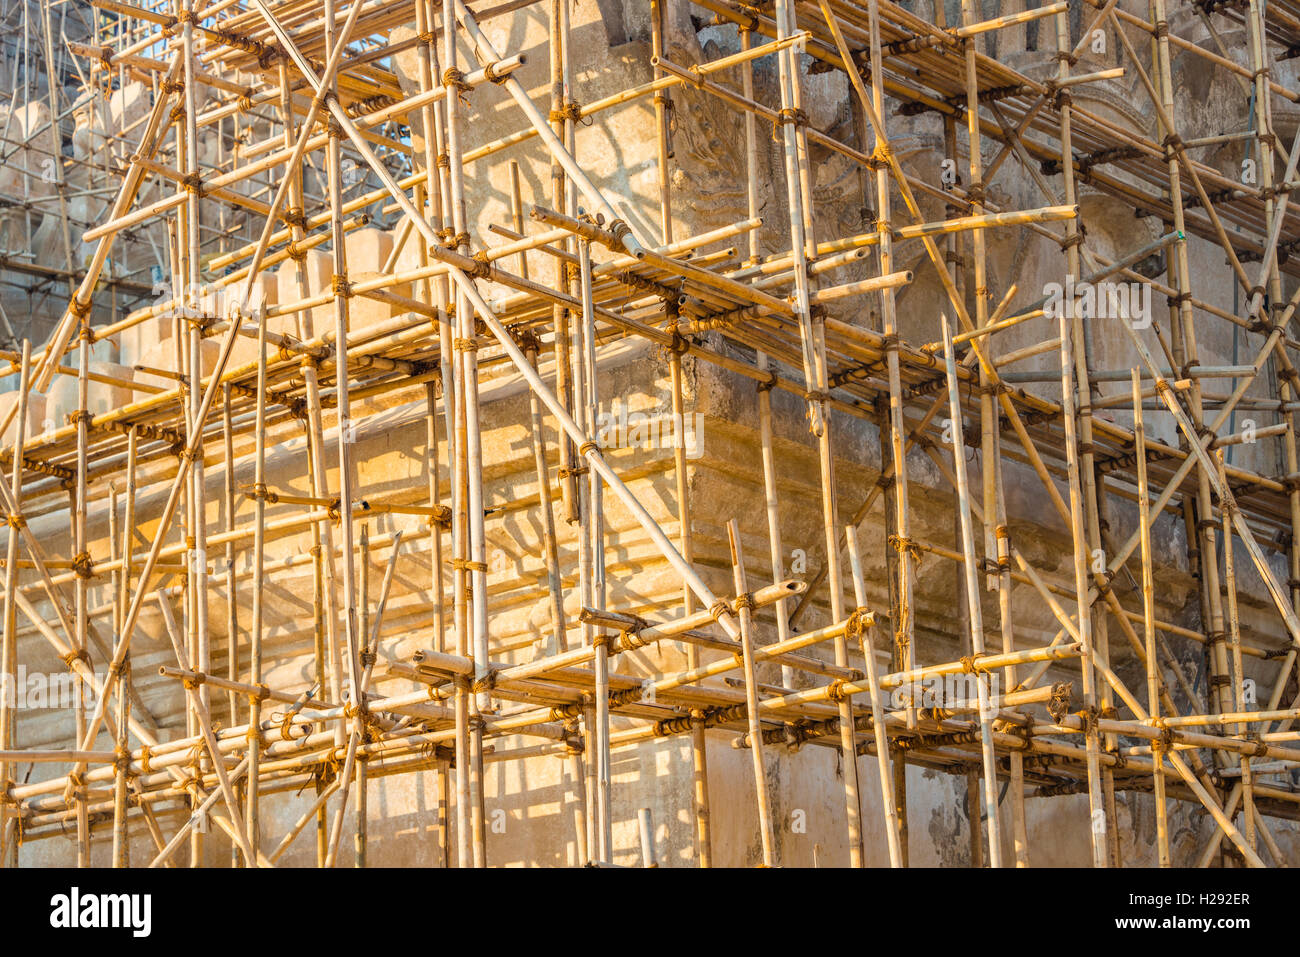 Bamboo scaffolding, construction work, Ananda Pahto Temple, Bagan, Mandalay Region, Myanmar - Stock Image